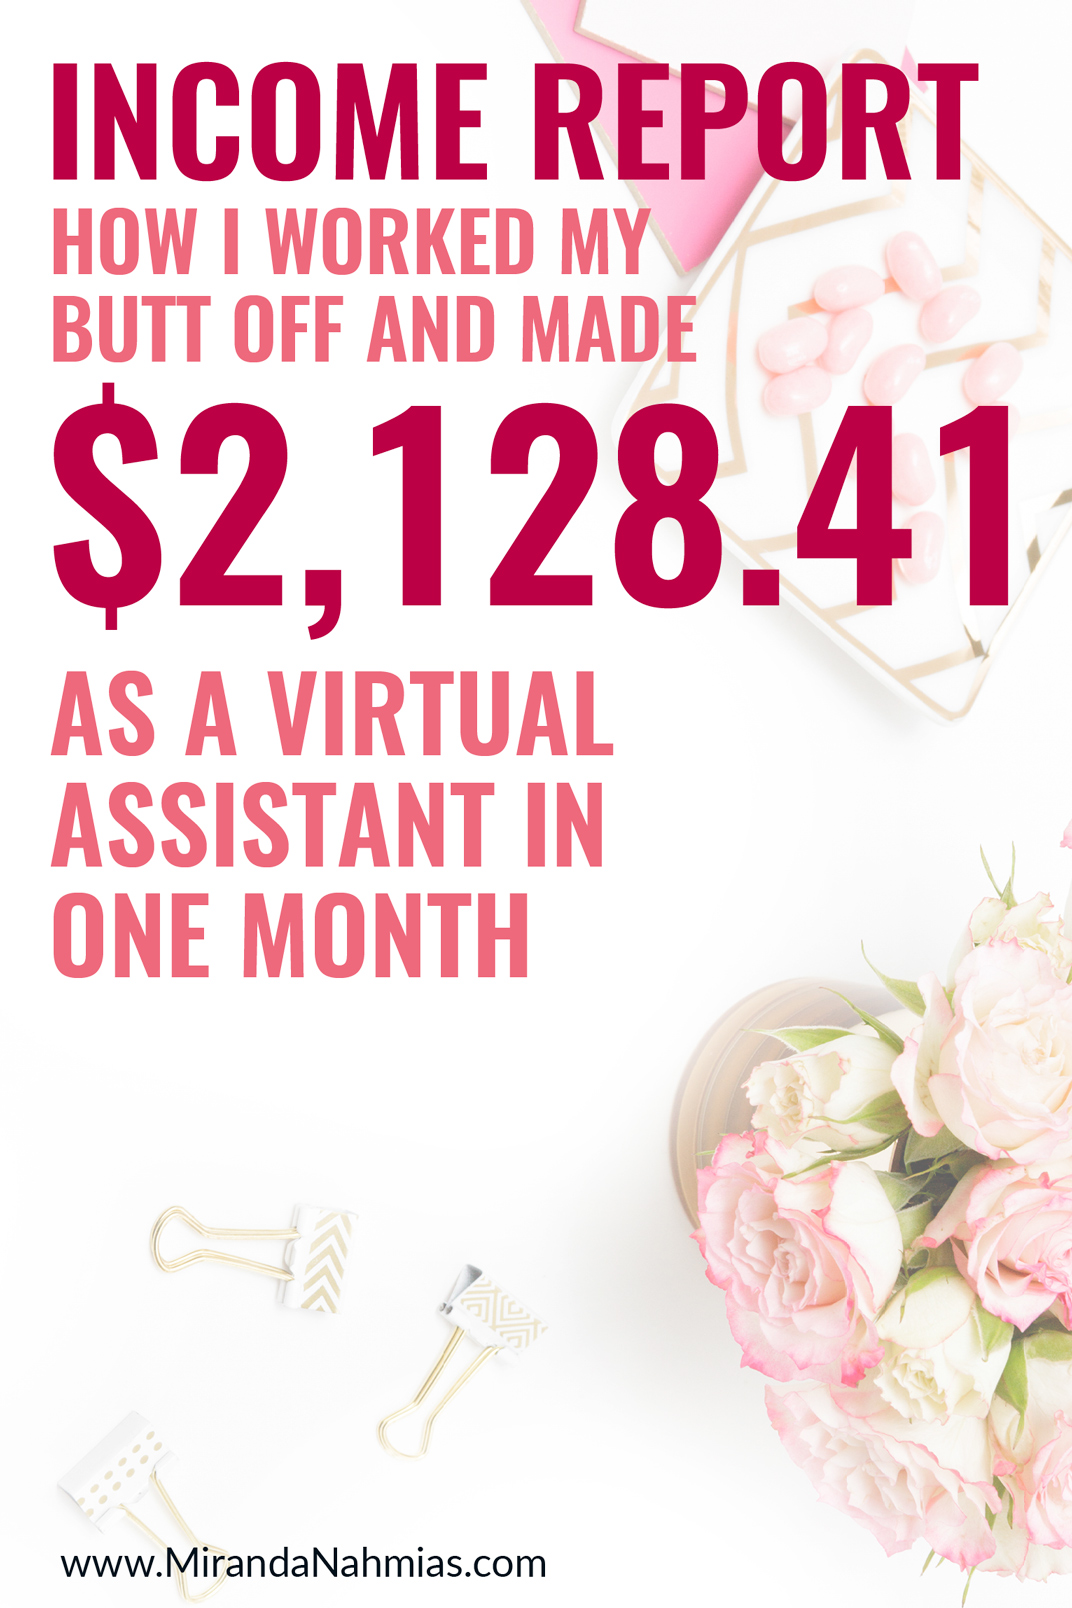 INCOME REPORT: How I Worked My Butt Off and Made $2,128.41 as a virtual assistant in one month! // Miranda Nahmias